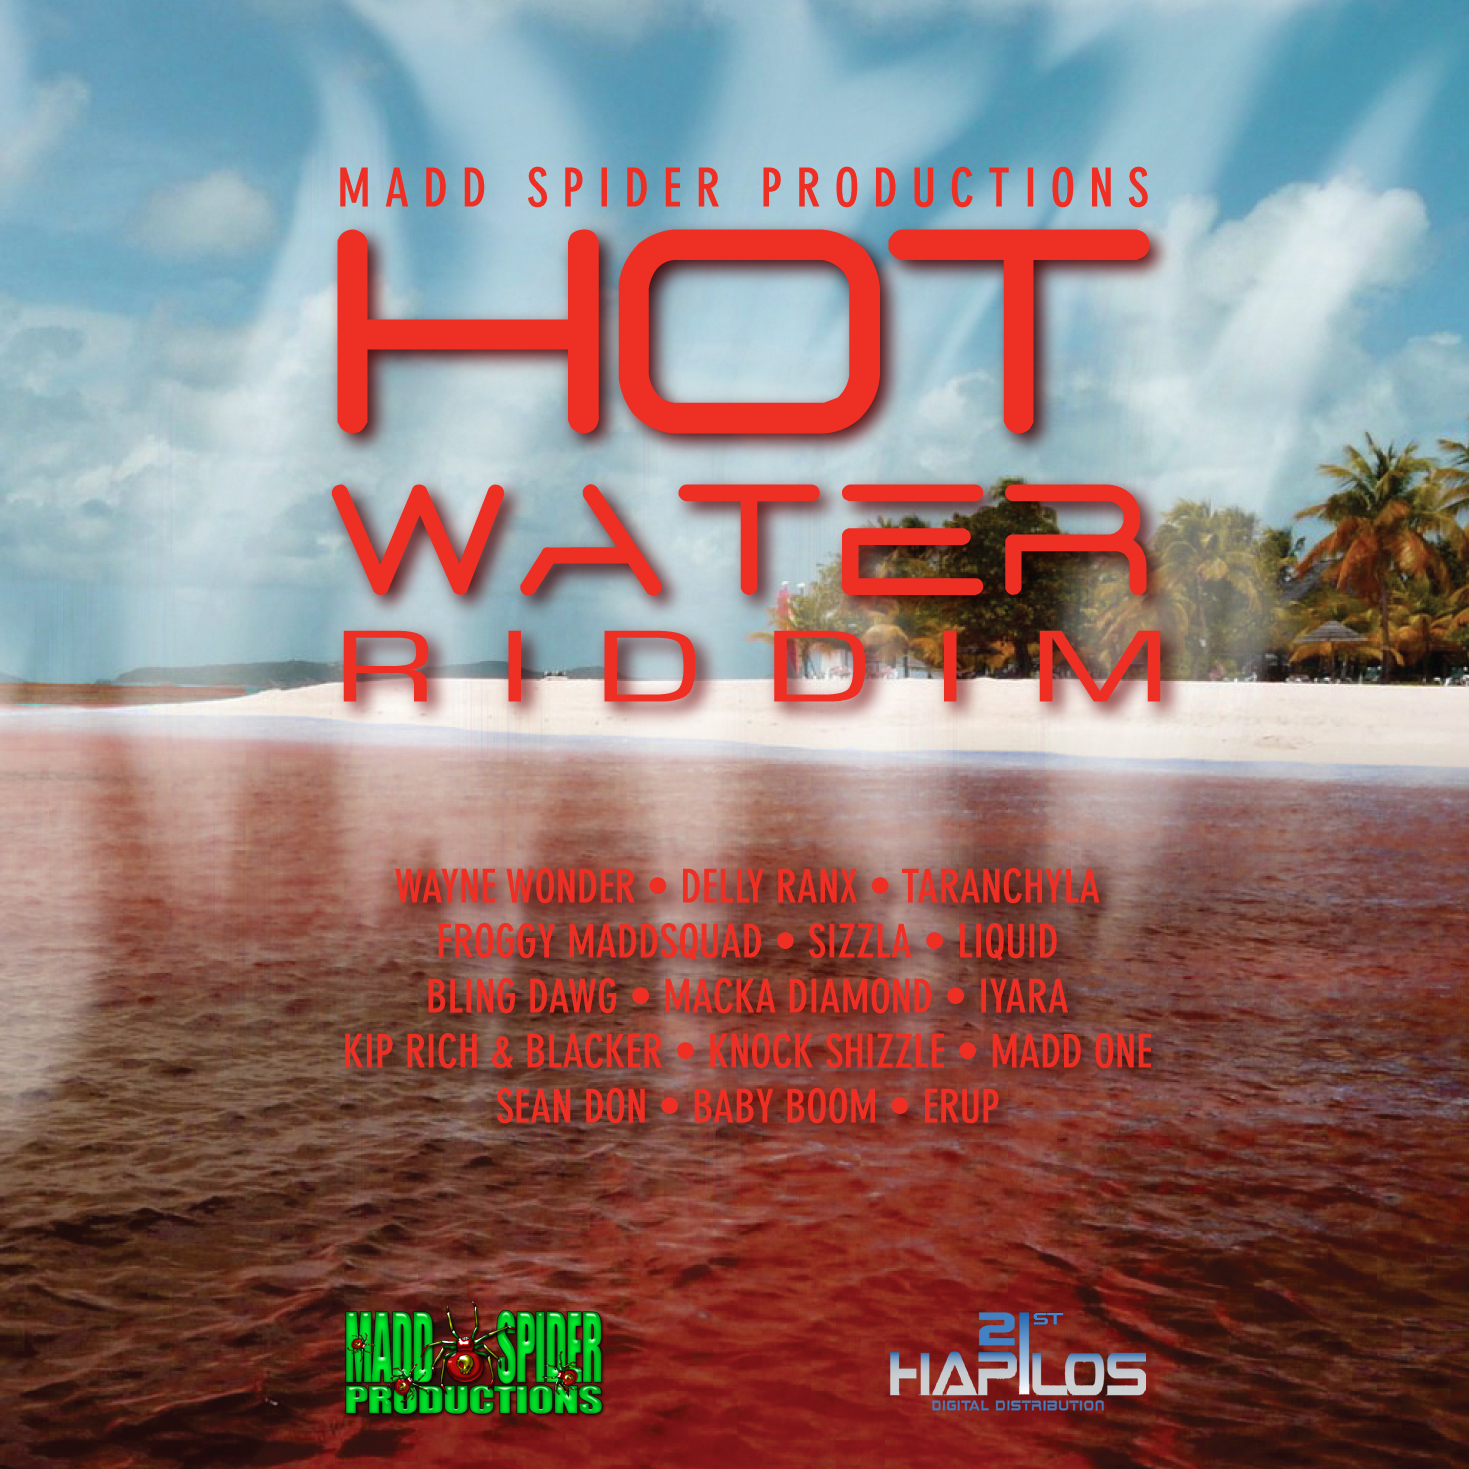 Madd Spider Productions Puts Fans In Hot Water Oneduchessent Com